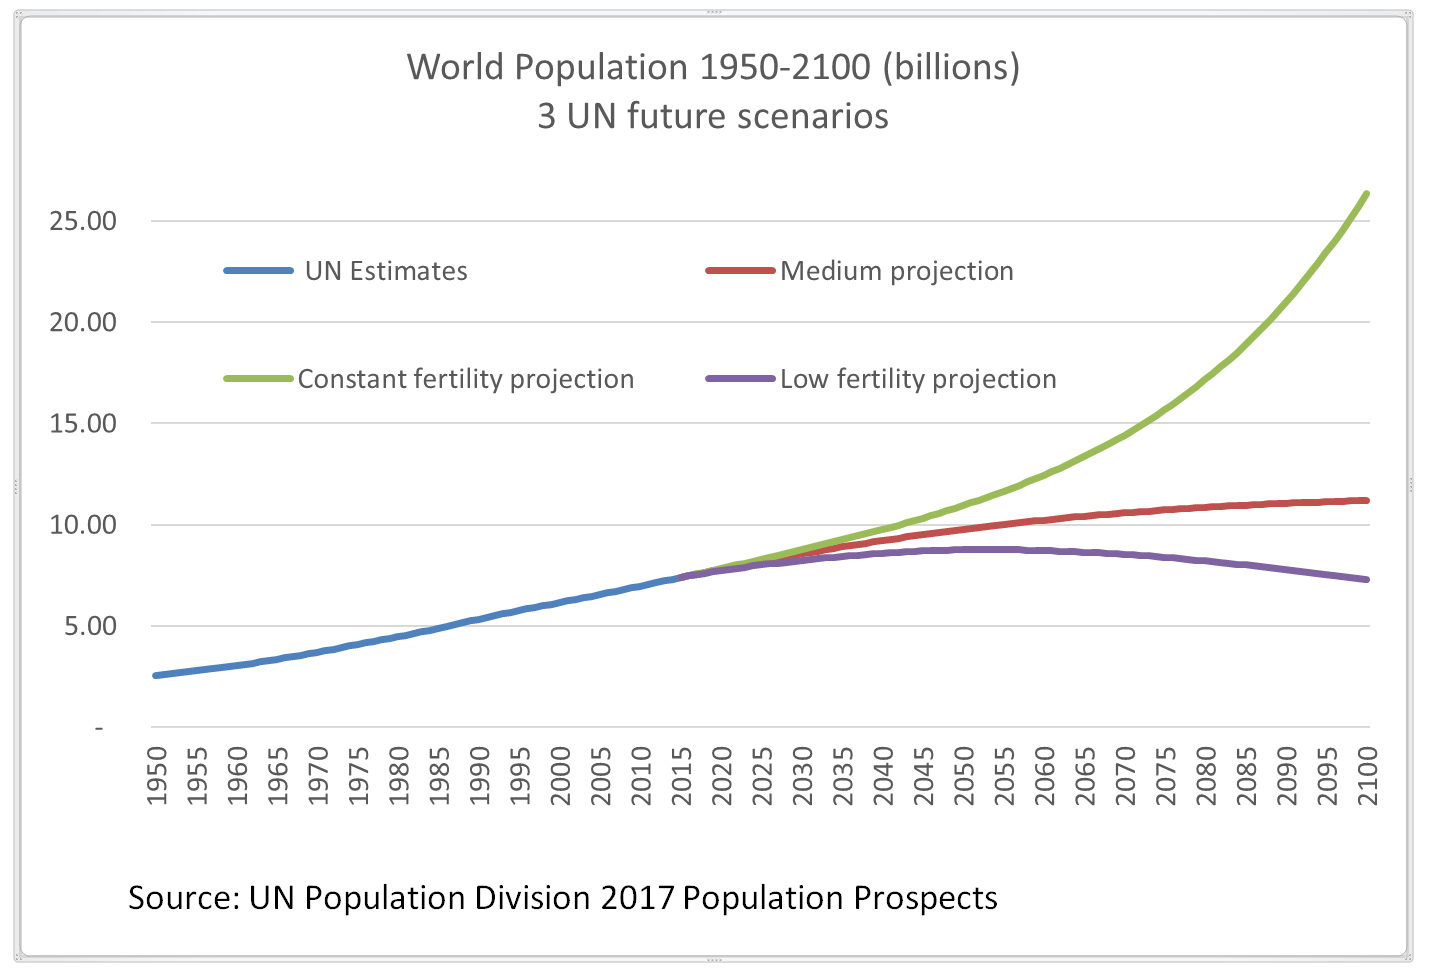 World population 1950 to 2100 in billions: Three U.N. future scenarios.